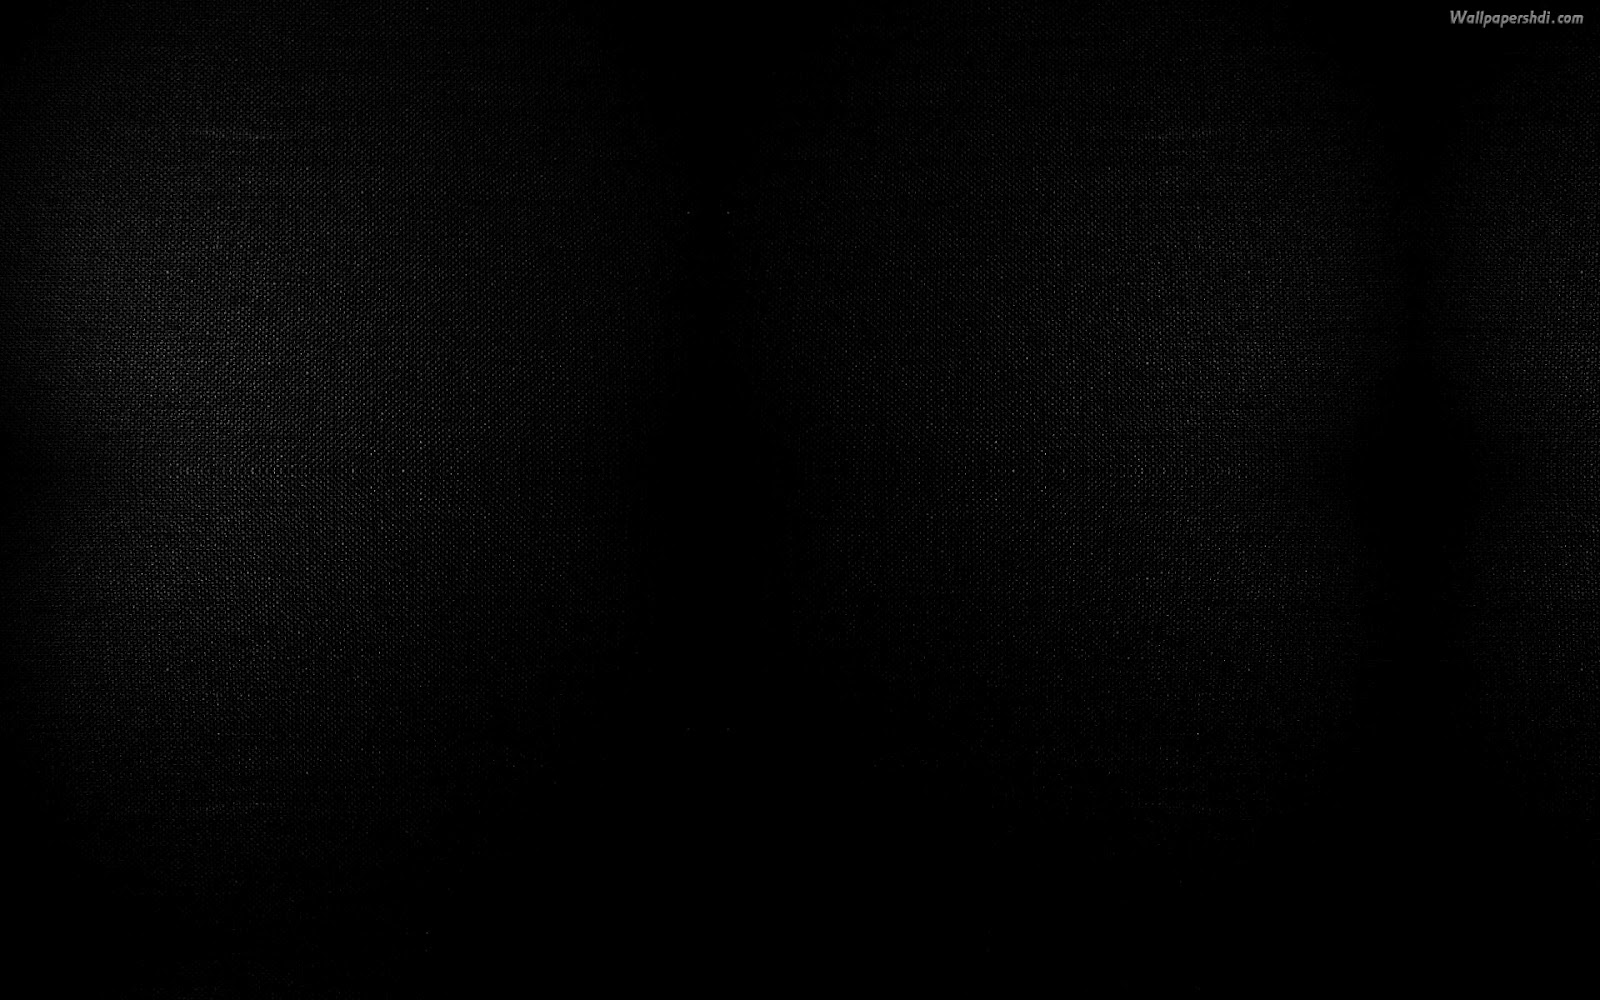 Black Wallpaper Best Wallpaper 1600x1000